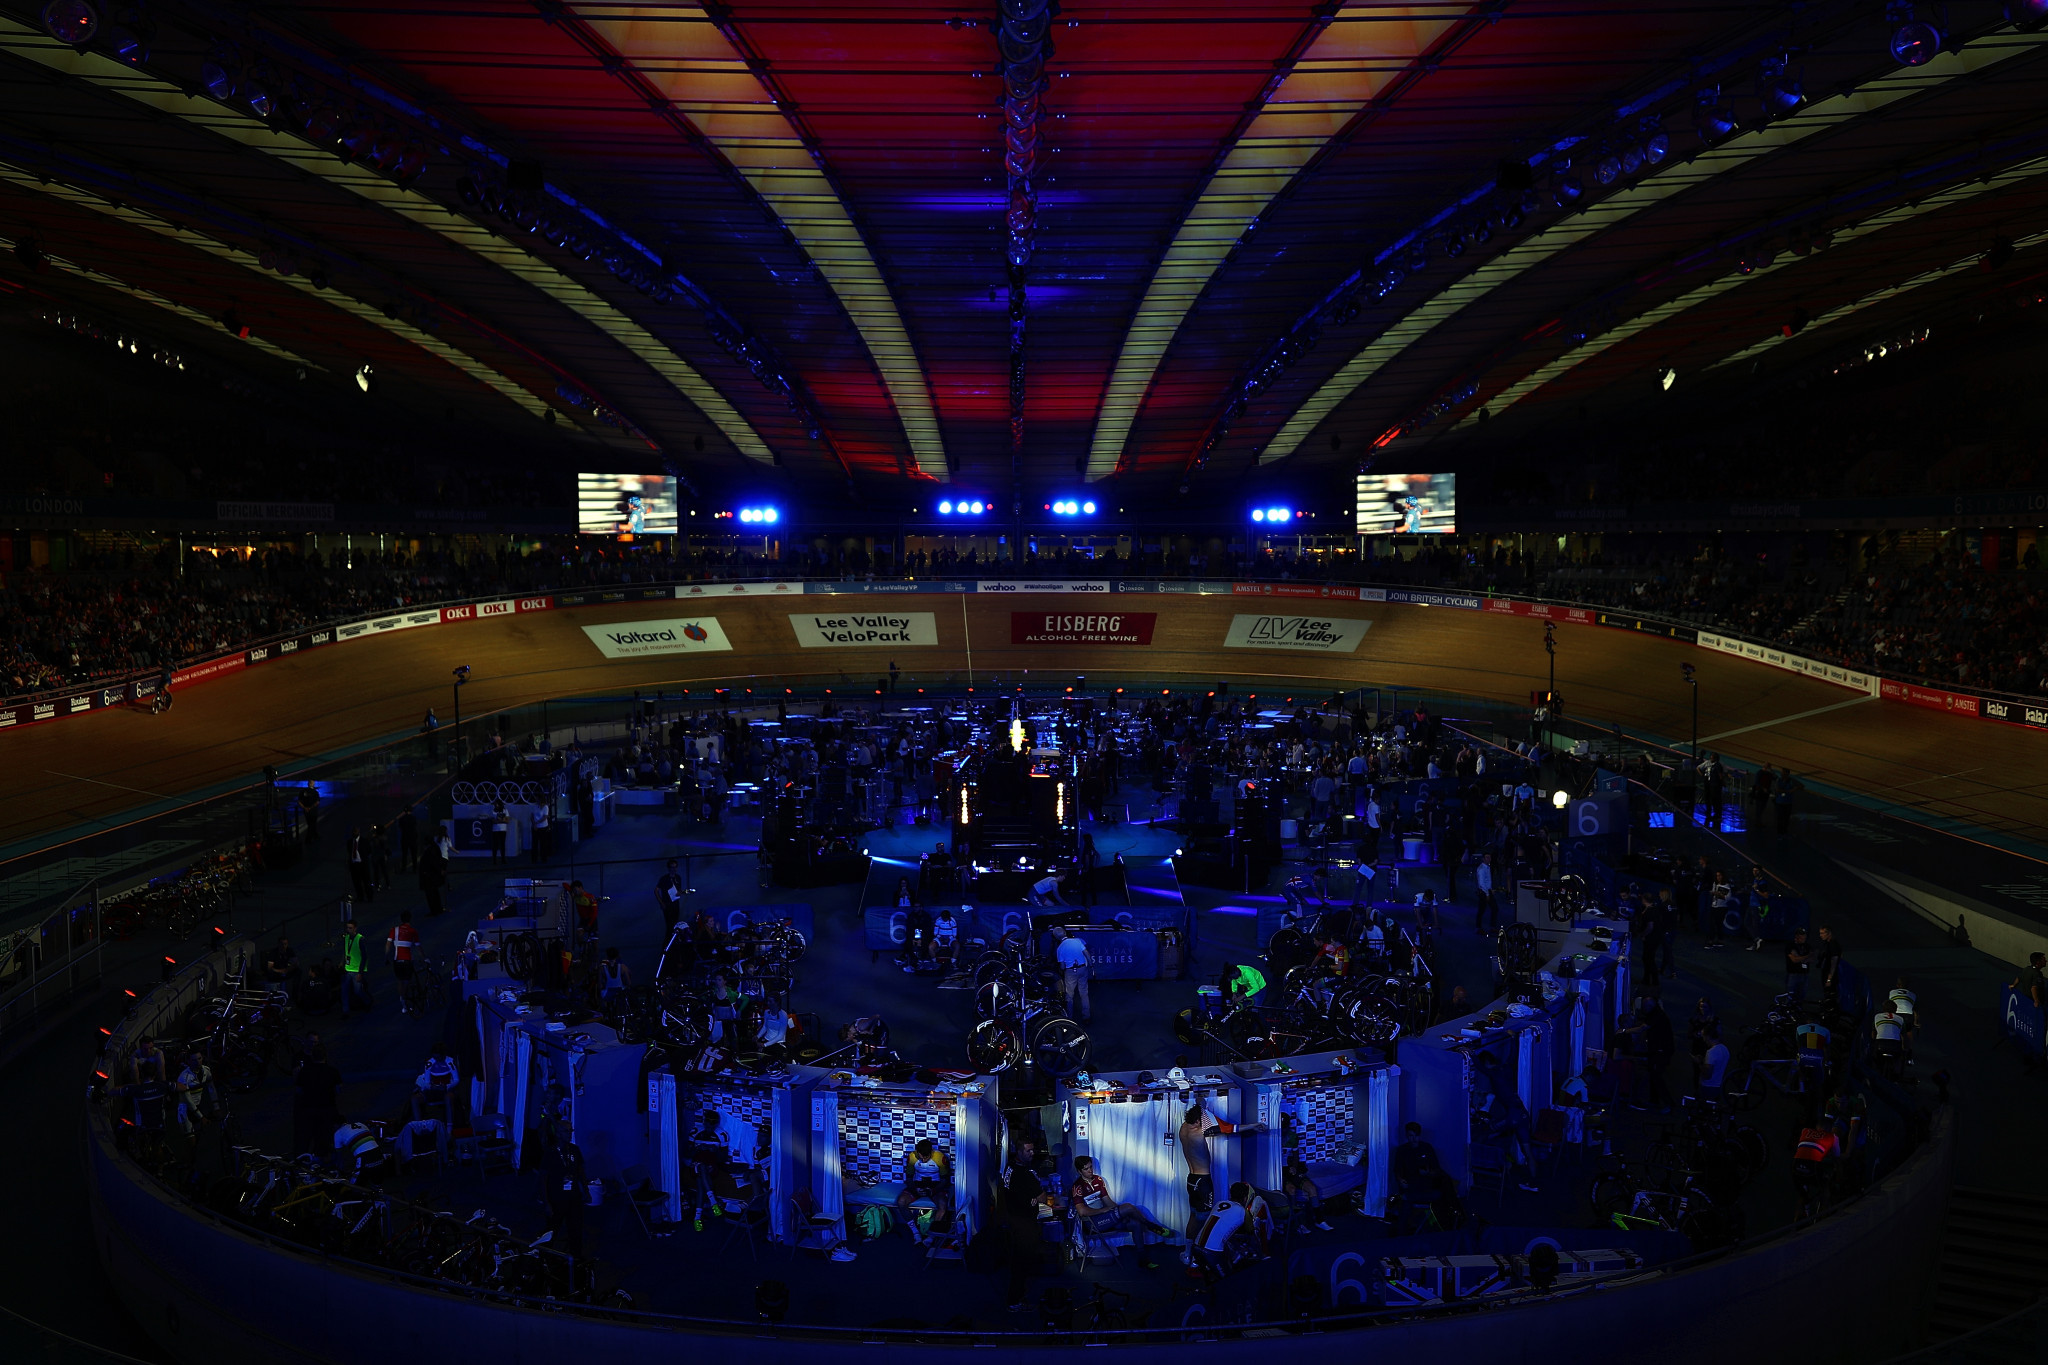 Track cycling during the 2022 Commonwealth Games could be staged 135 miles away from Birmingham at the velodrome built for the 2012 Olympic and Paralympic Games in London ©Getty Images